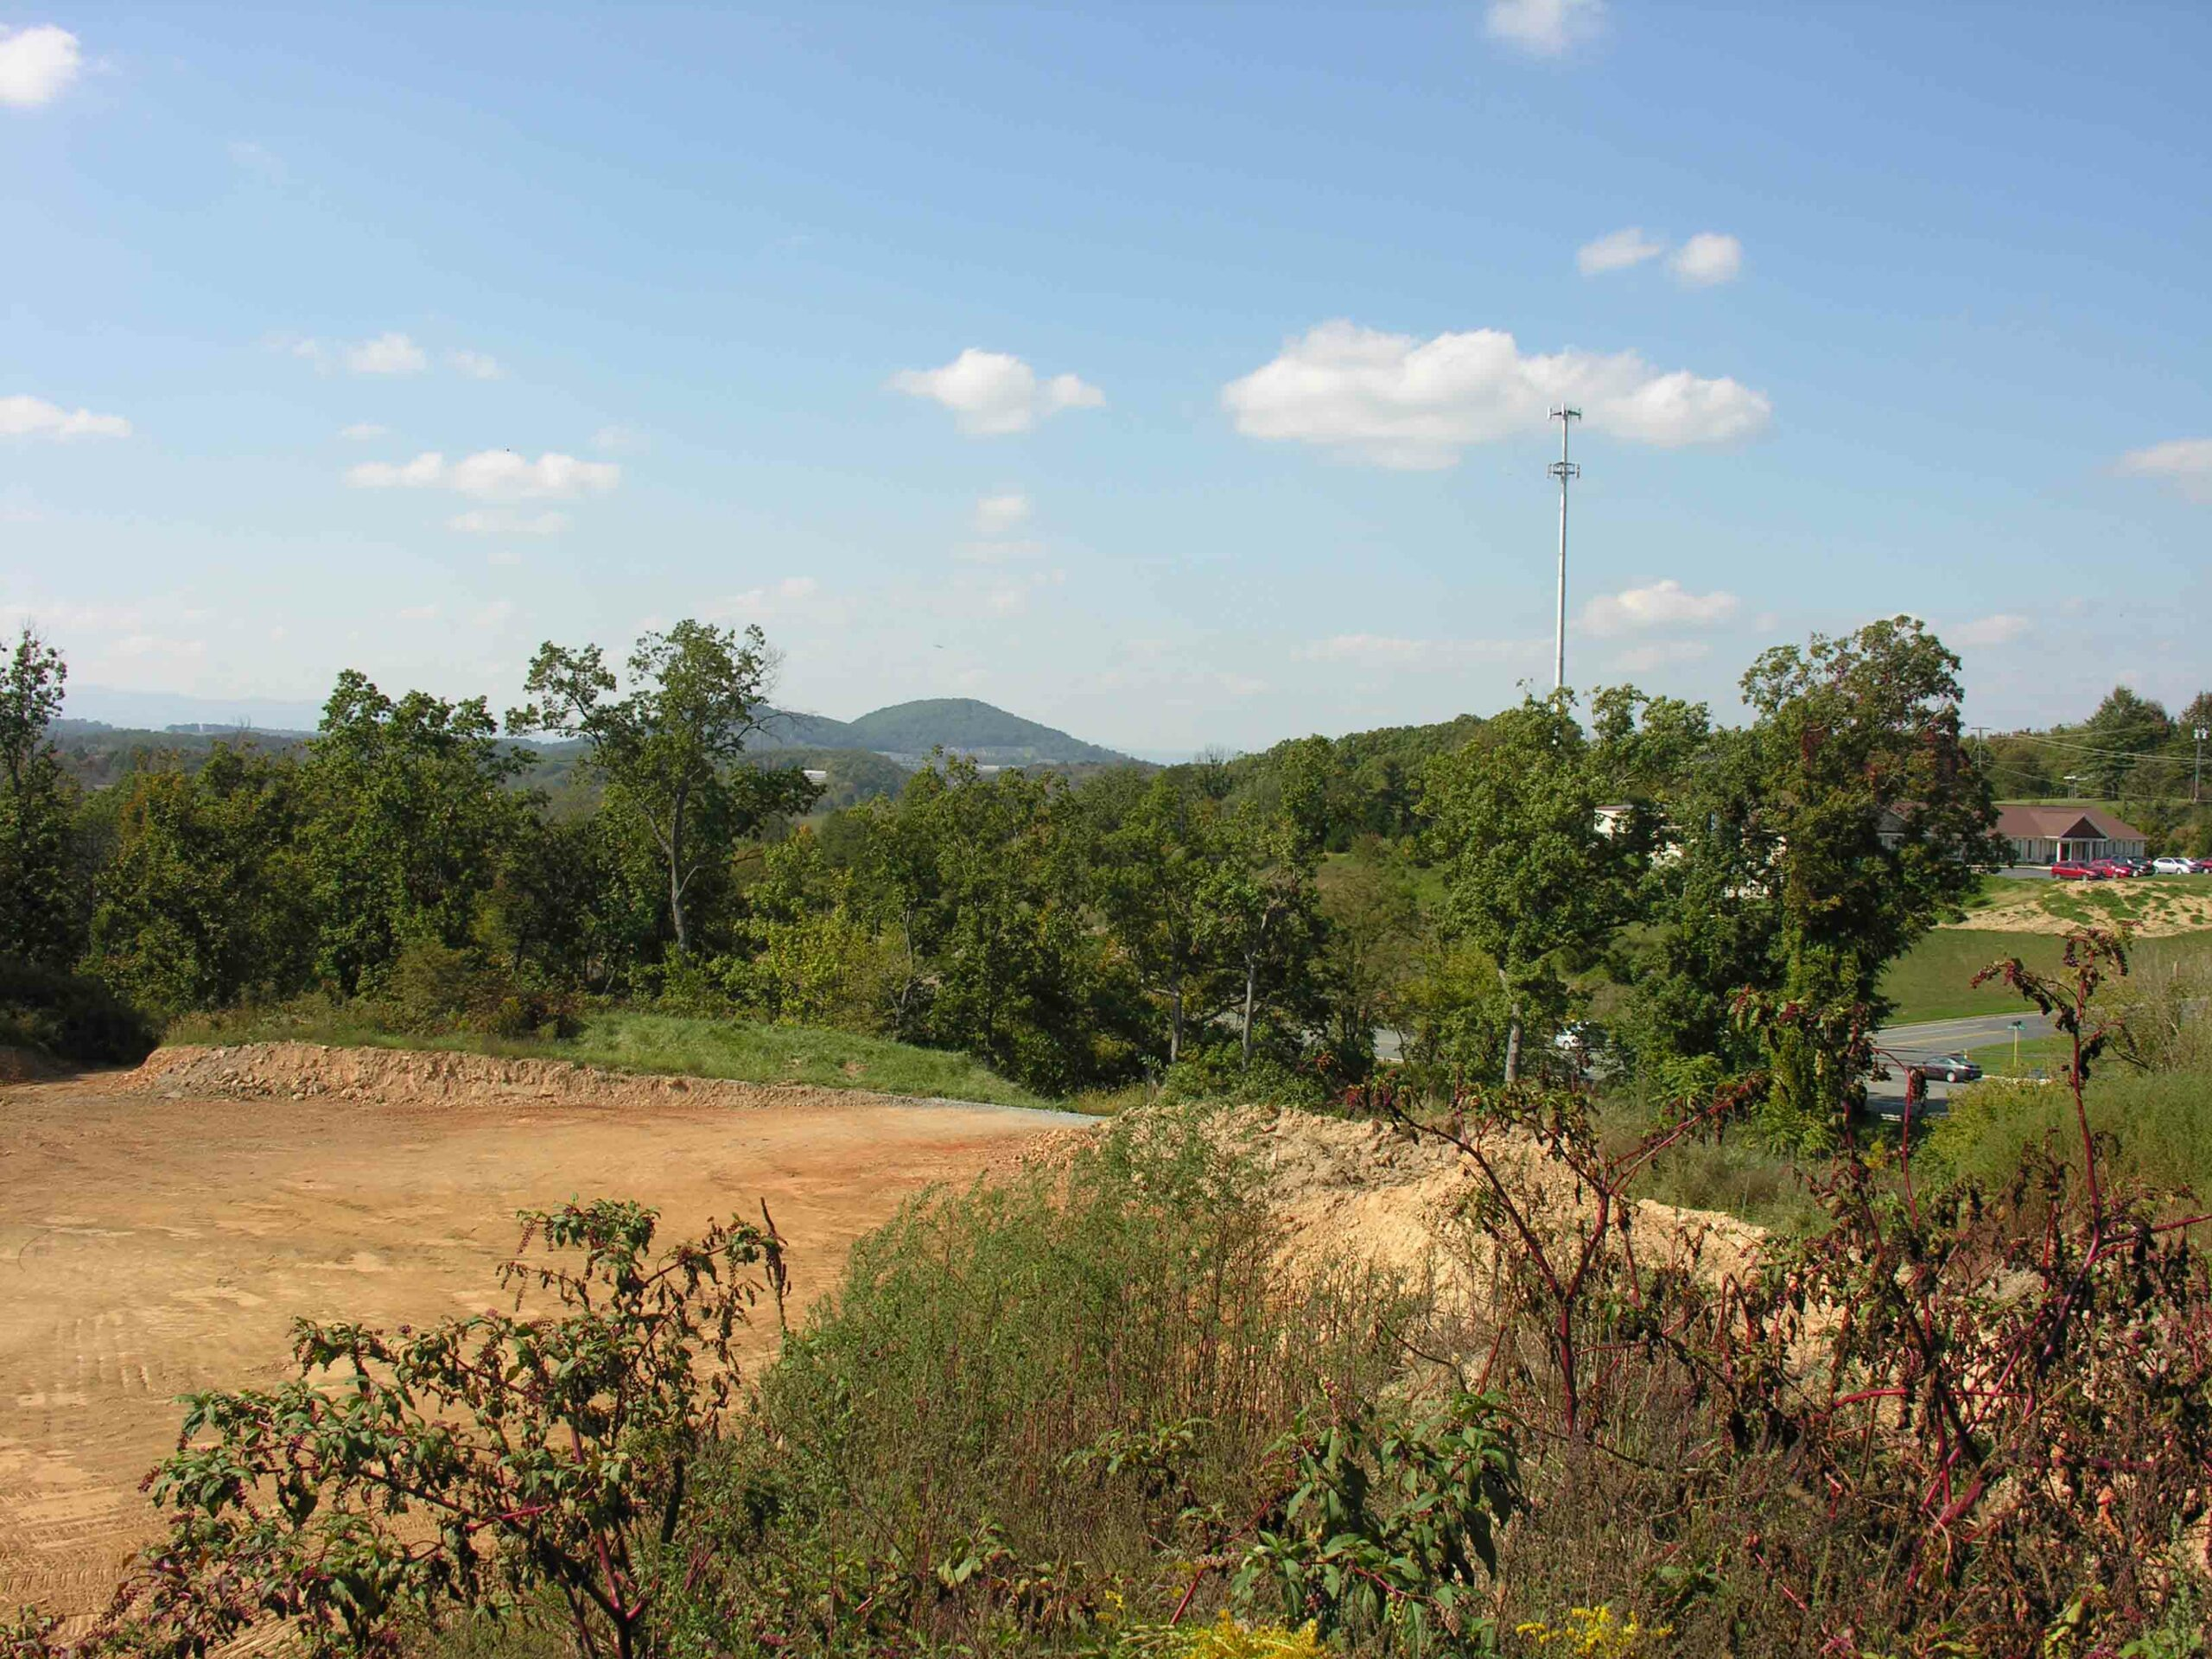 Commercial Land in Augusta County for a Bank